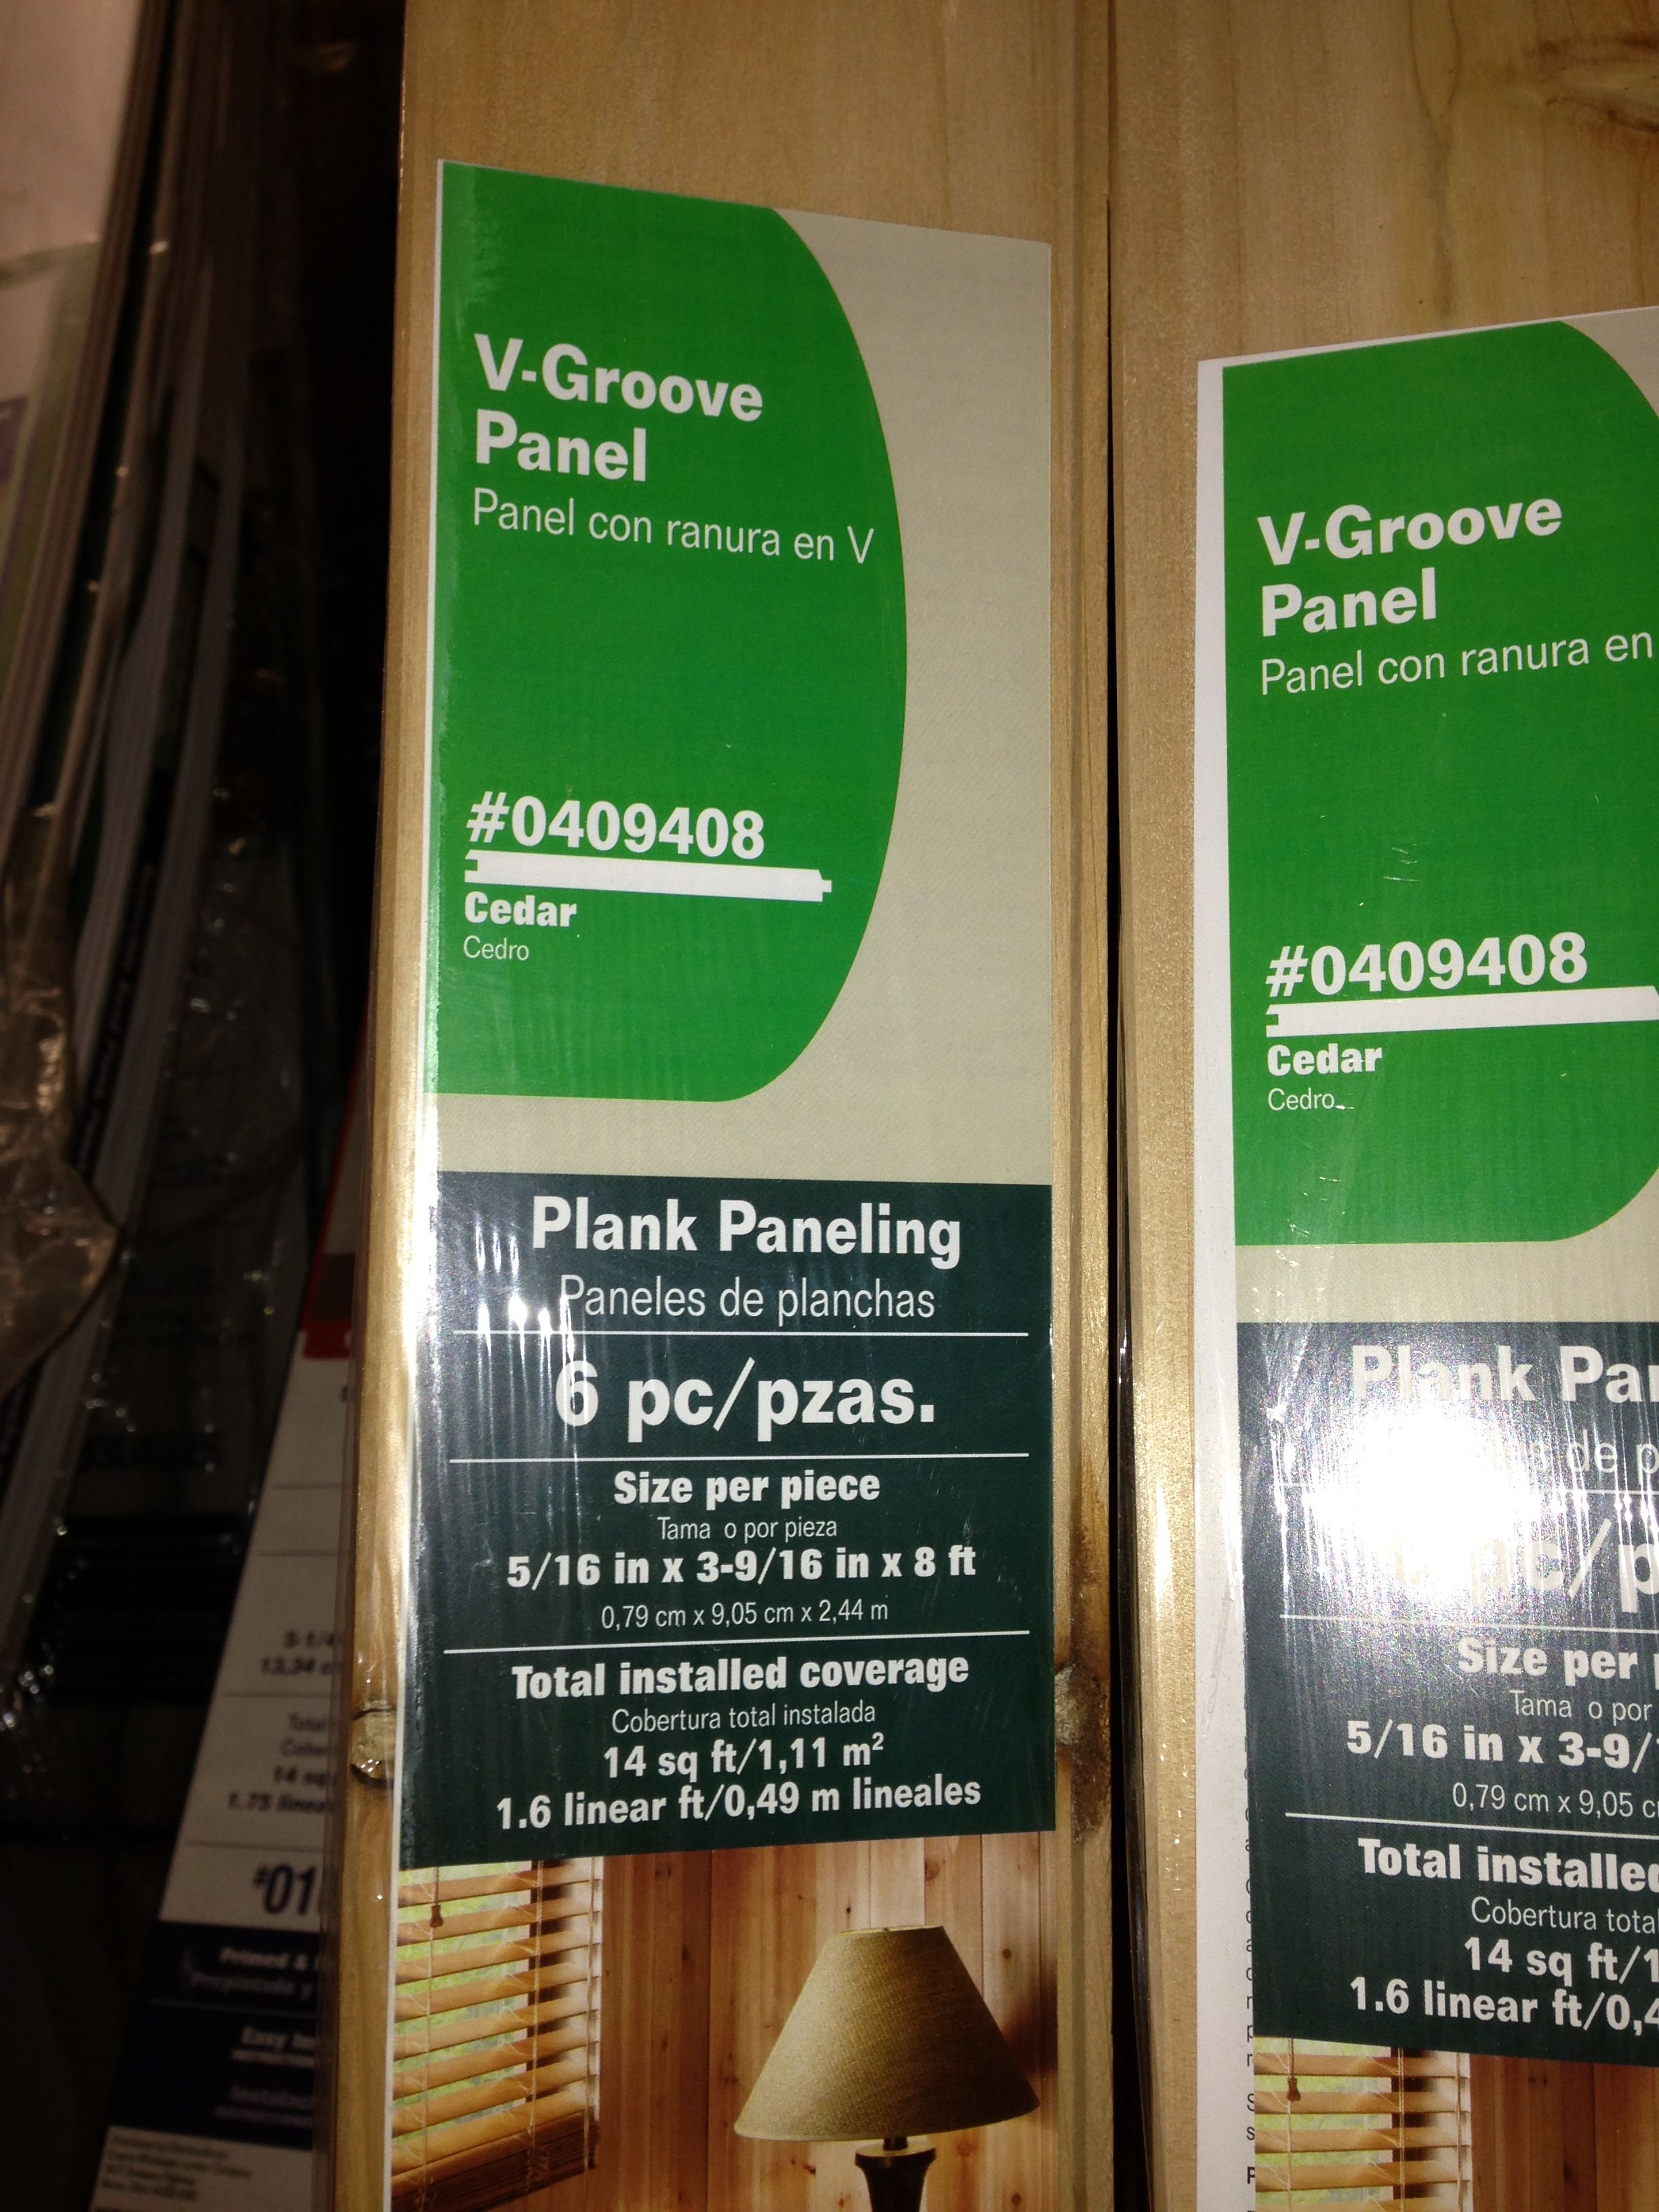 Tongue and groove cedar plank paneling at Lowe's 14 ft.², 8 foot ...